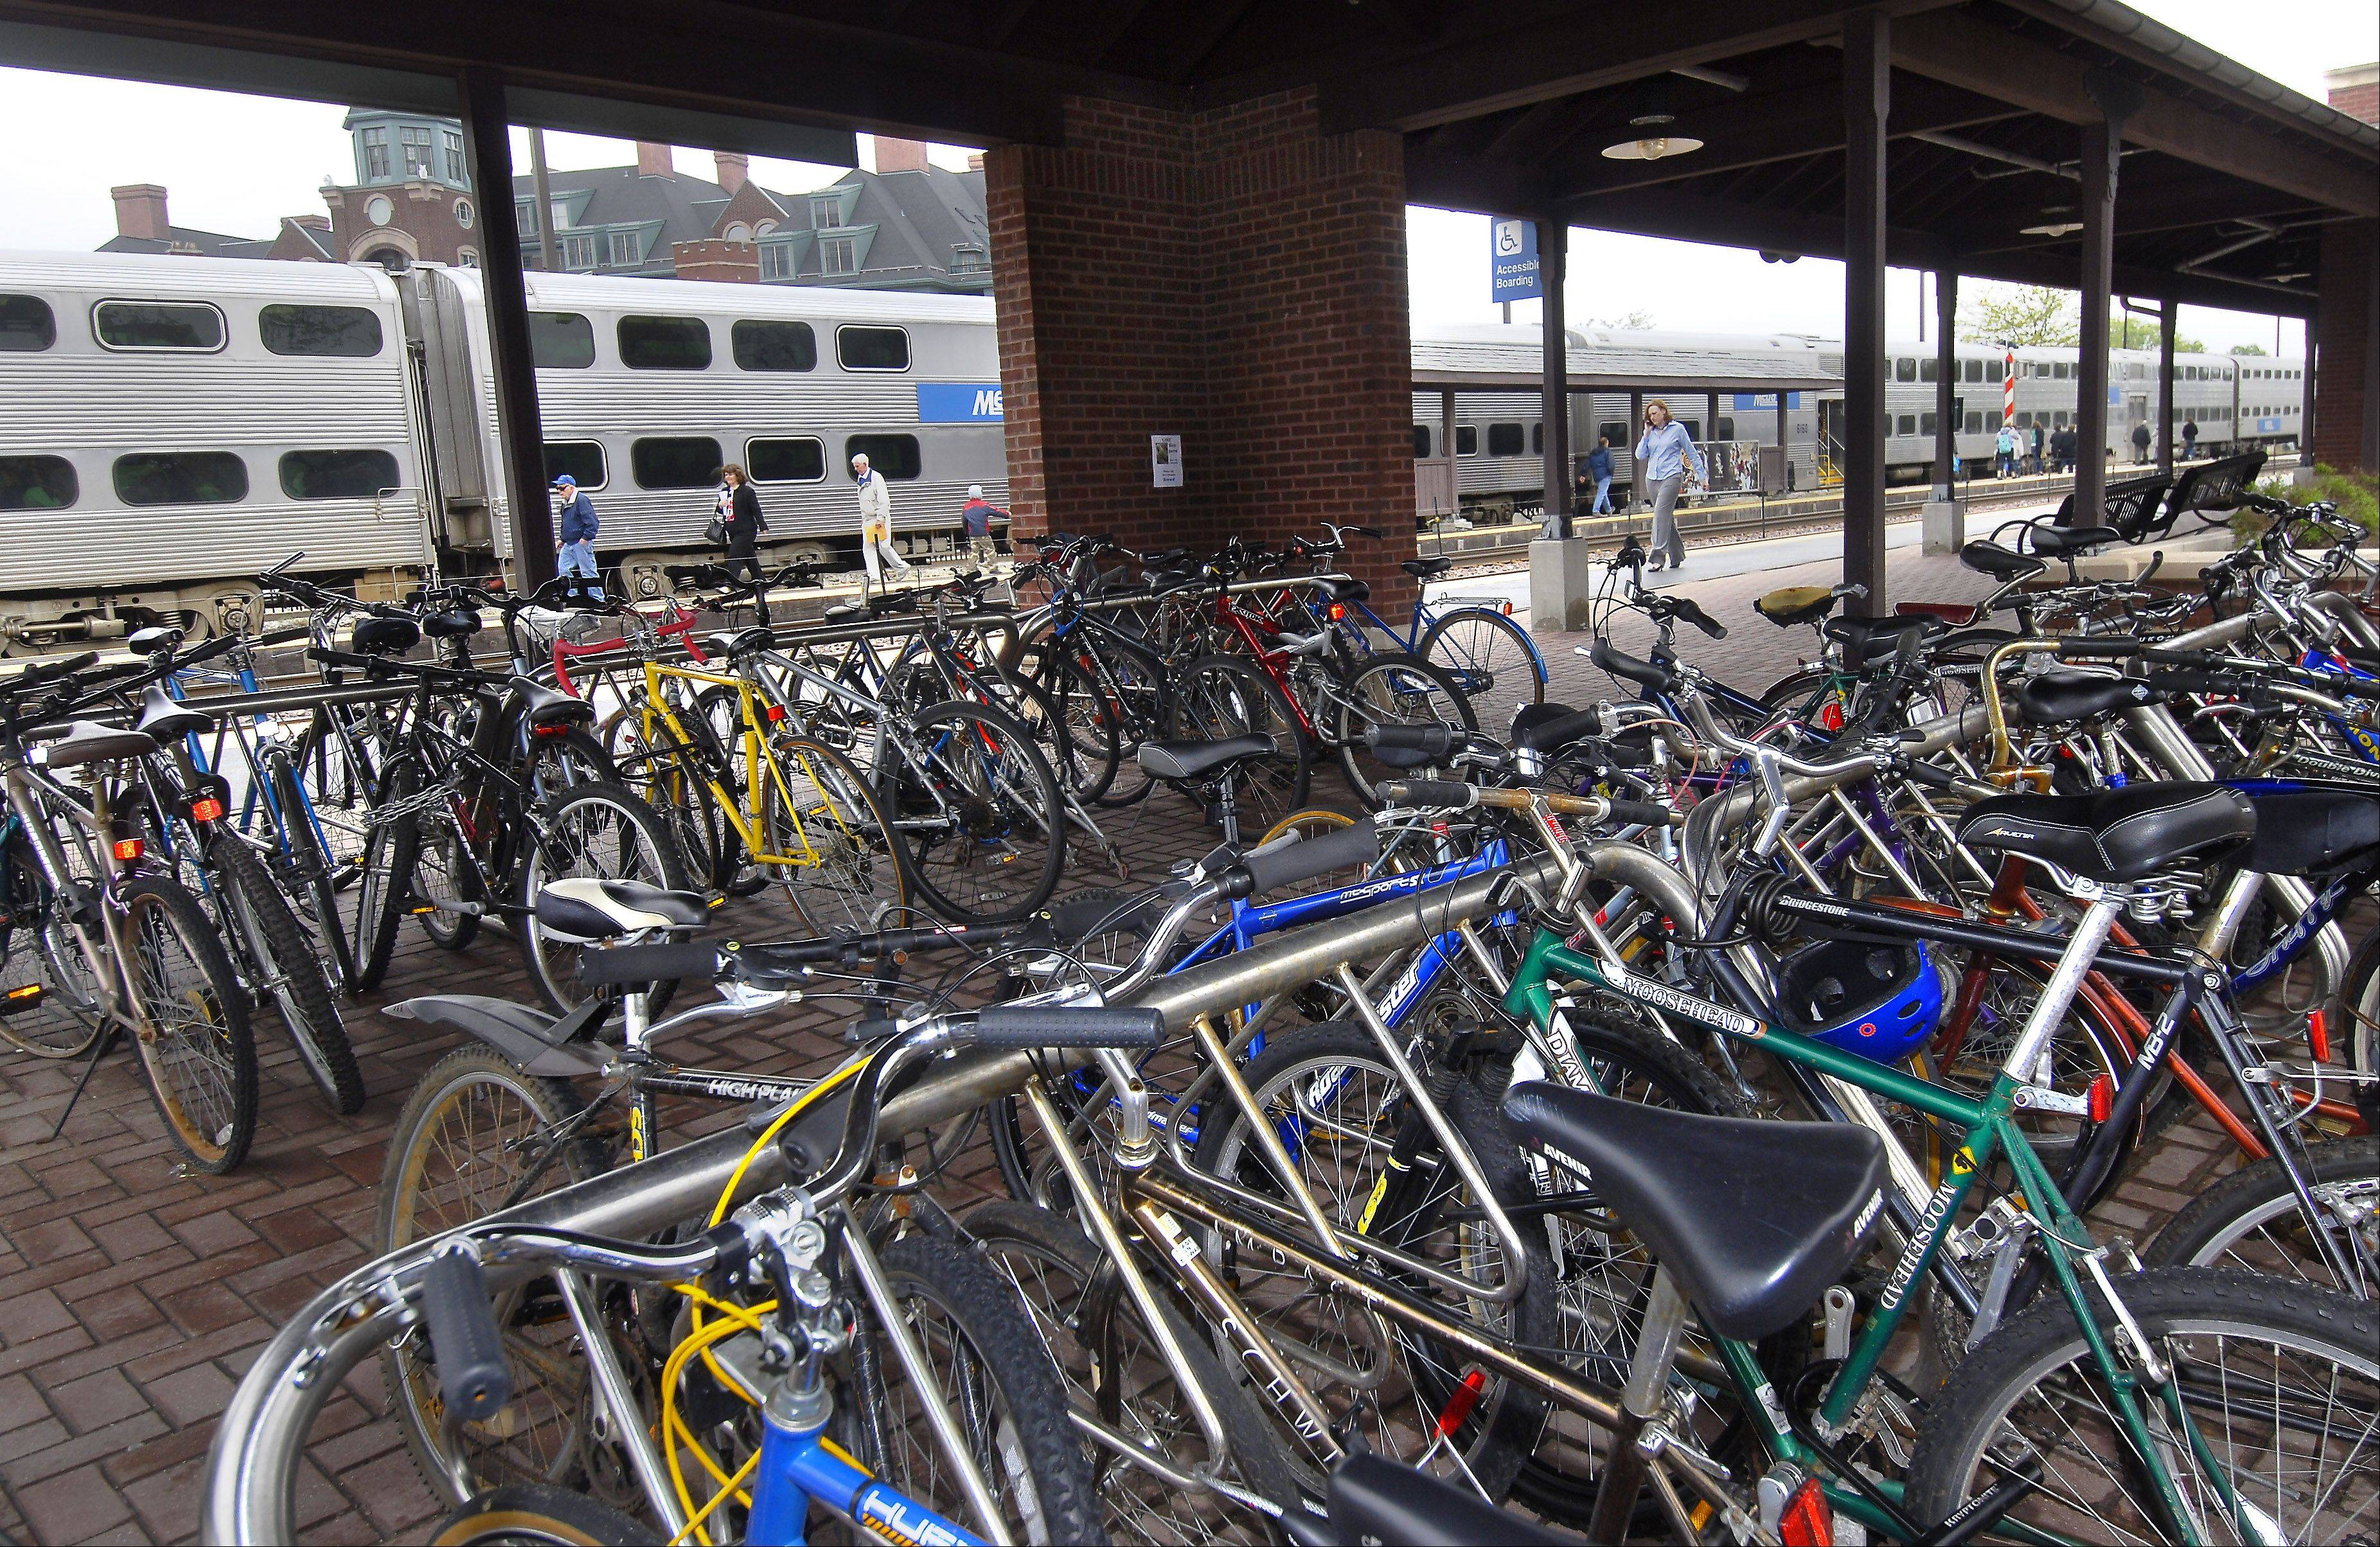 The Bicycle and Pedestrian Advisory Commission is proposing an ordinance that would require all new developments to have a minimum number of bike rack spots, like these at the Arlington Heights train station.